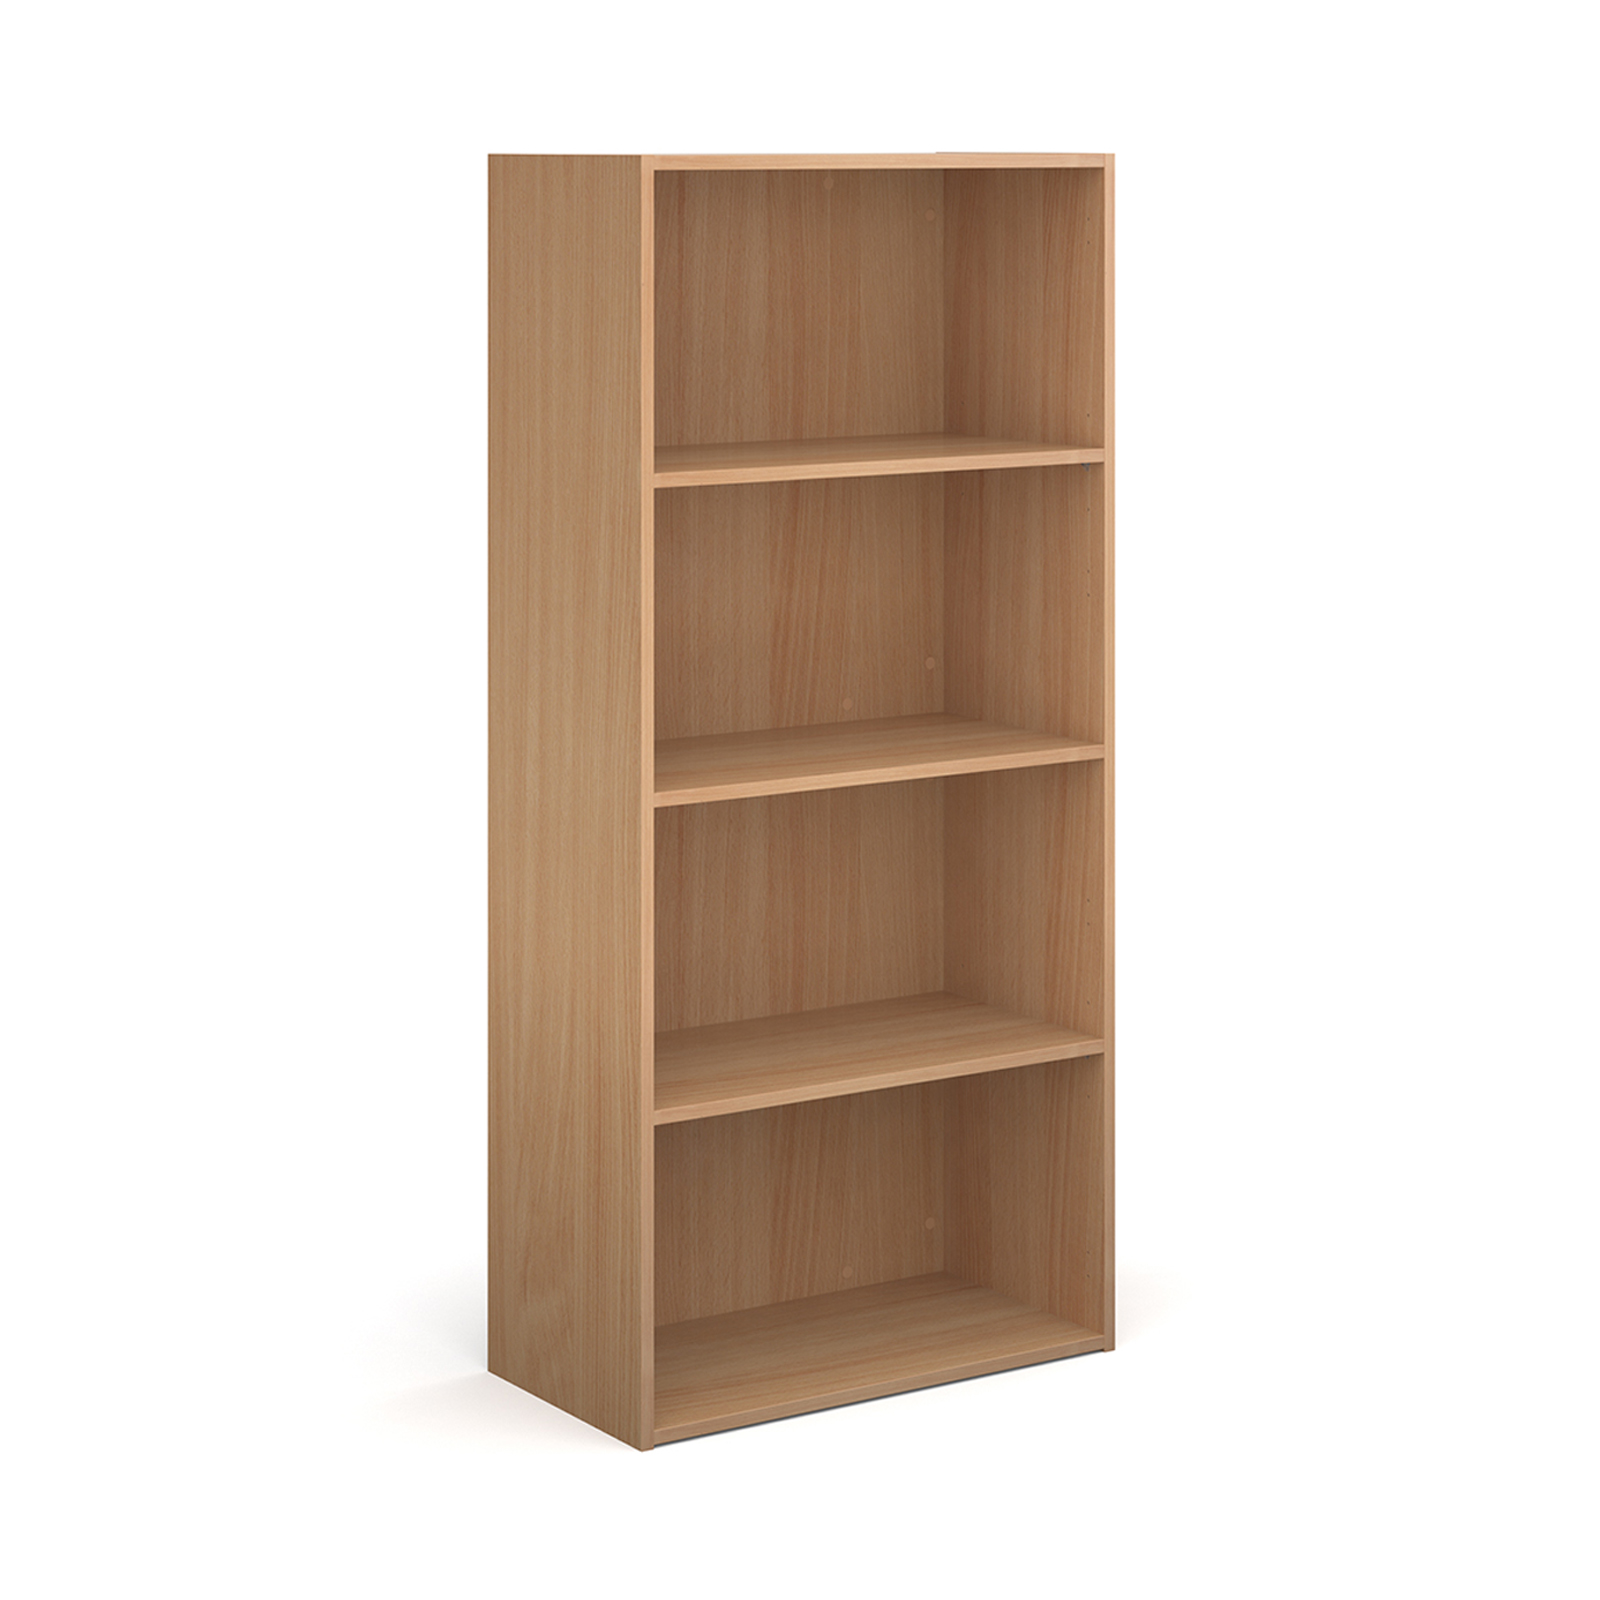 Over 1200mm High Contract bookcase 1630mm high with 3 shelves - beech